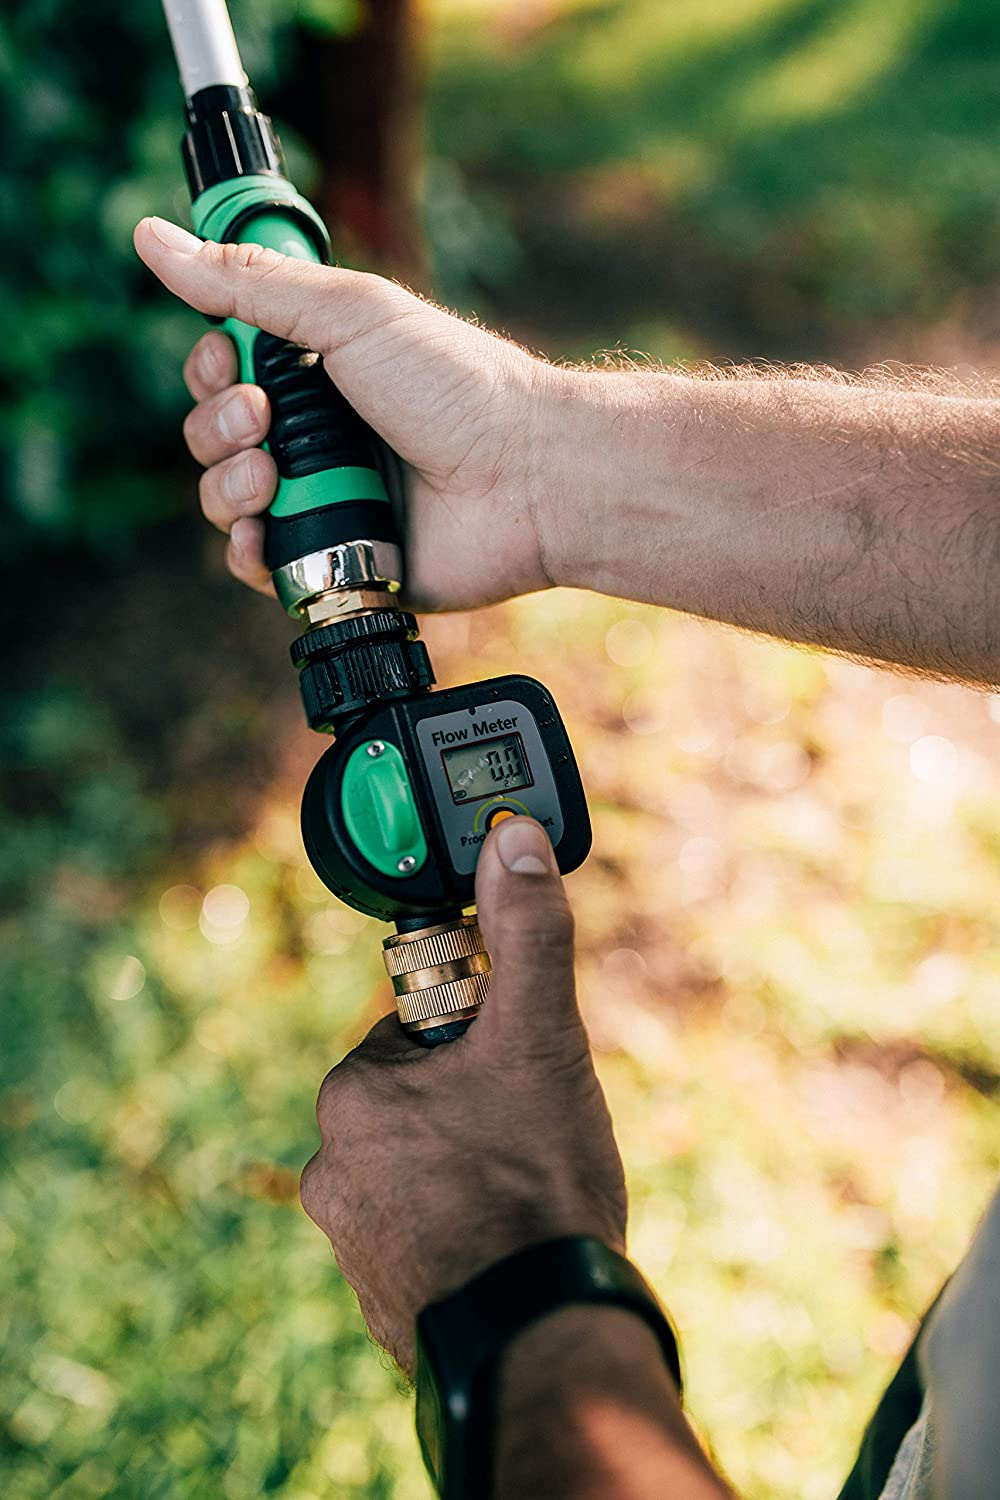 Krageröd – Garden Hose Water Meter   Measure in Gallons or Liters   Use with Garden Water Timer to Measure The Exact Amount of Water Used in Outdoor Irrigation   Simple Intuitive Design  : Home & Kitchen